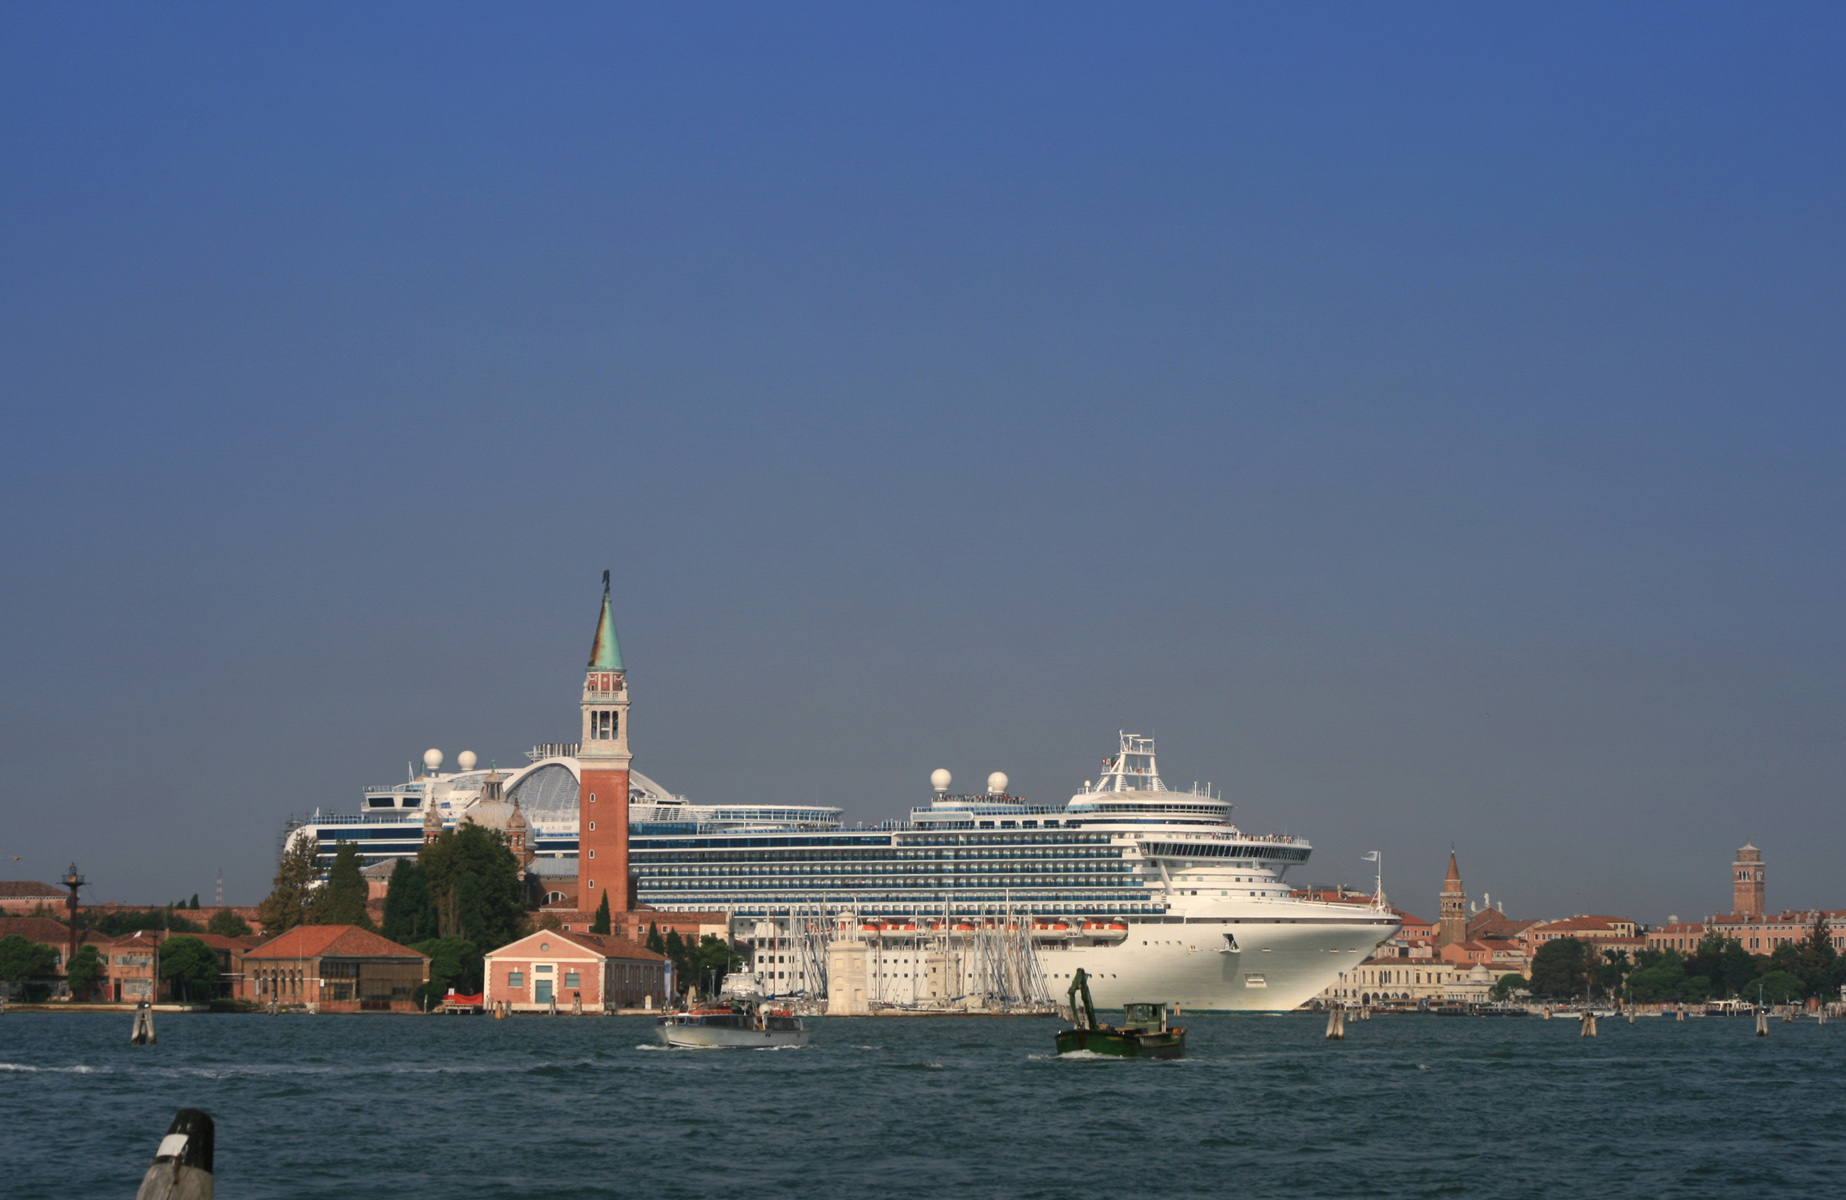 Cruise ship entering St. Mark's Basin, Venice, 2014